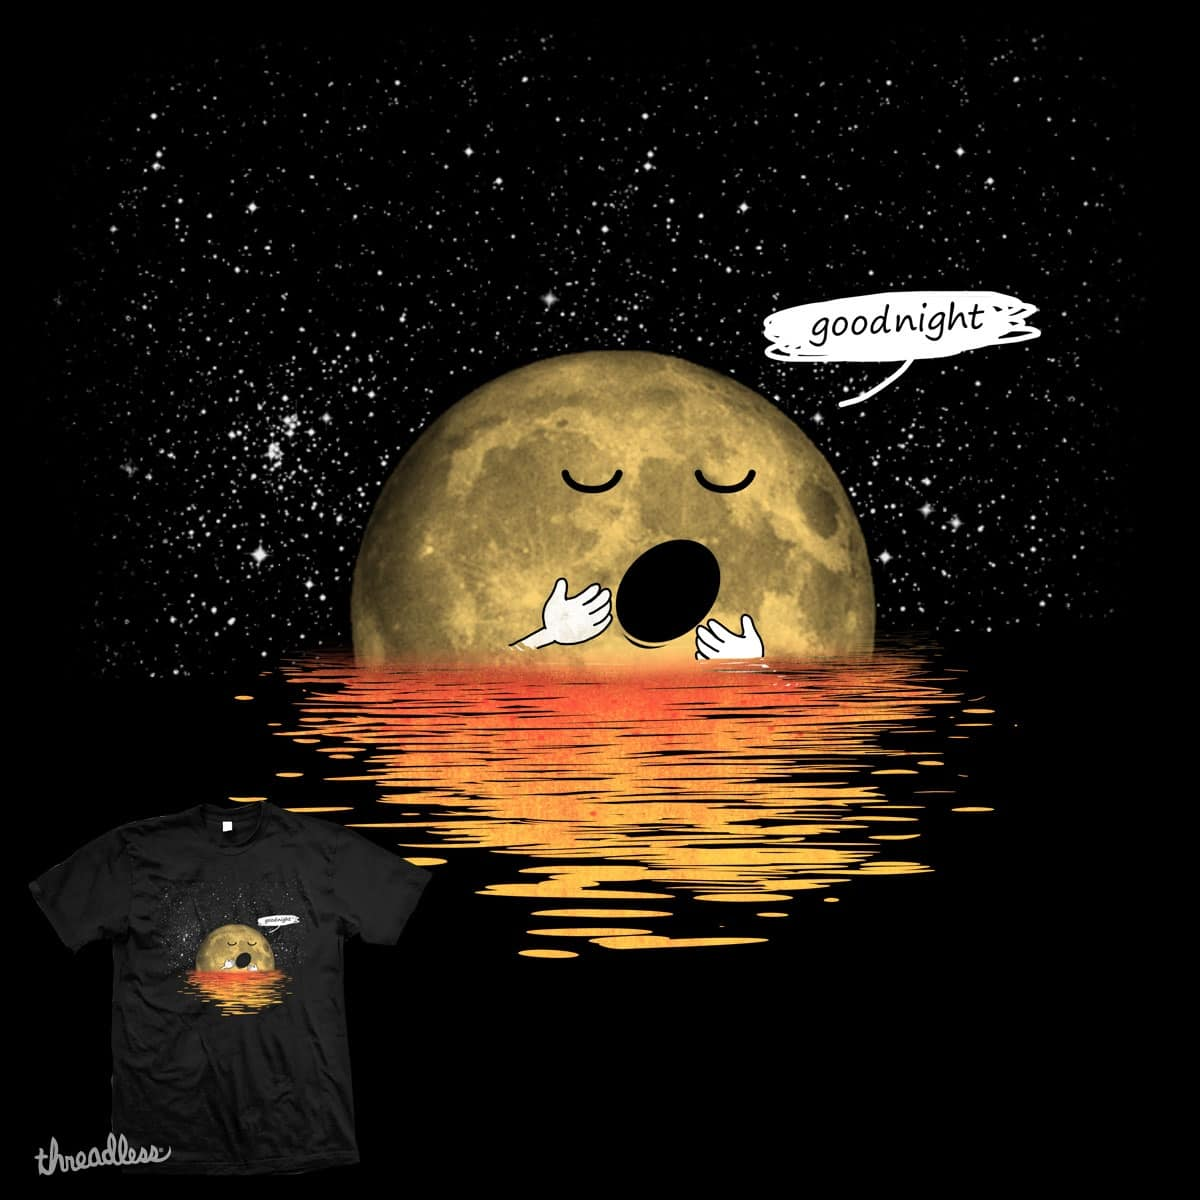 goodnight by mainial on Threadless